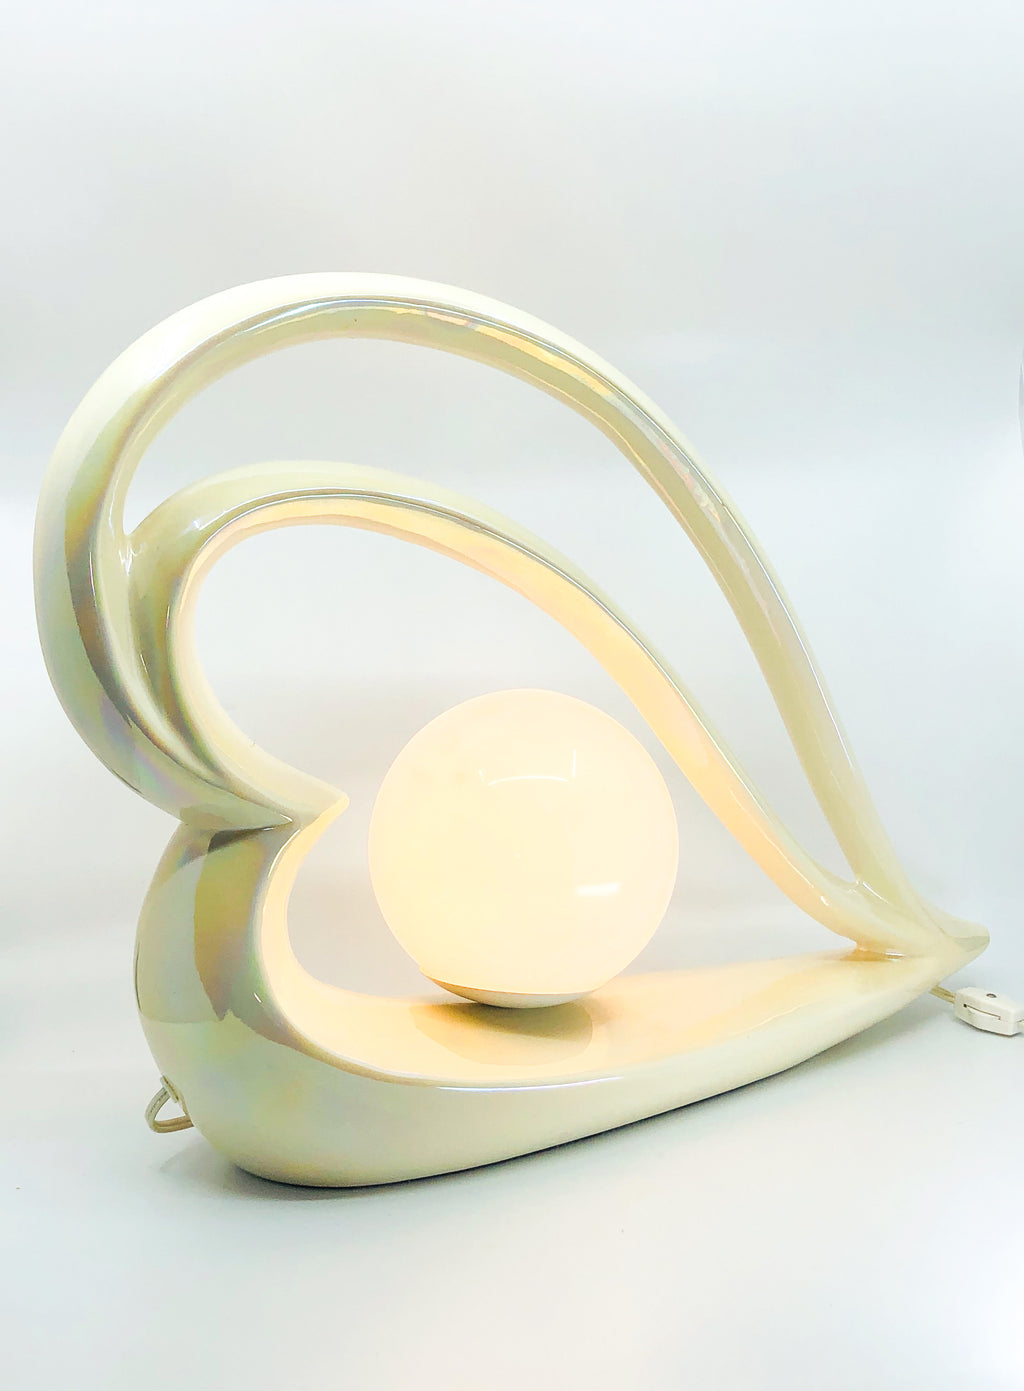 Pair of Deco Revival Opalescent Heart Shape Table Lamps